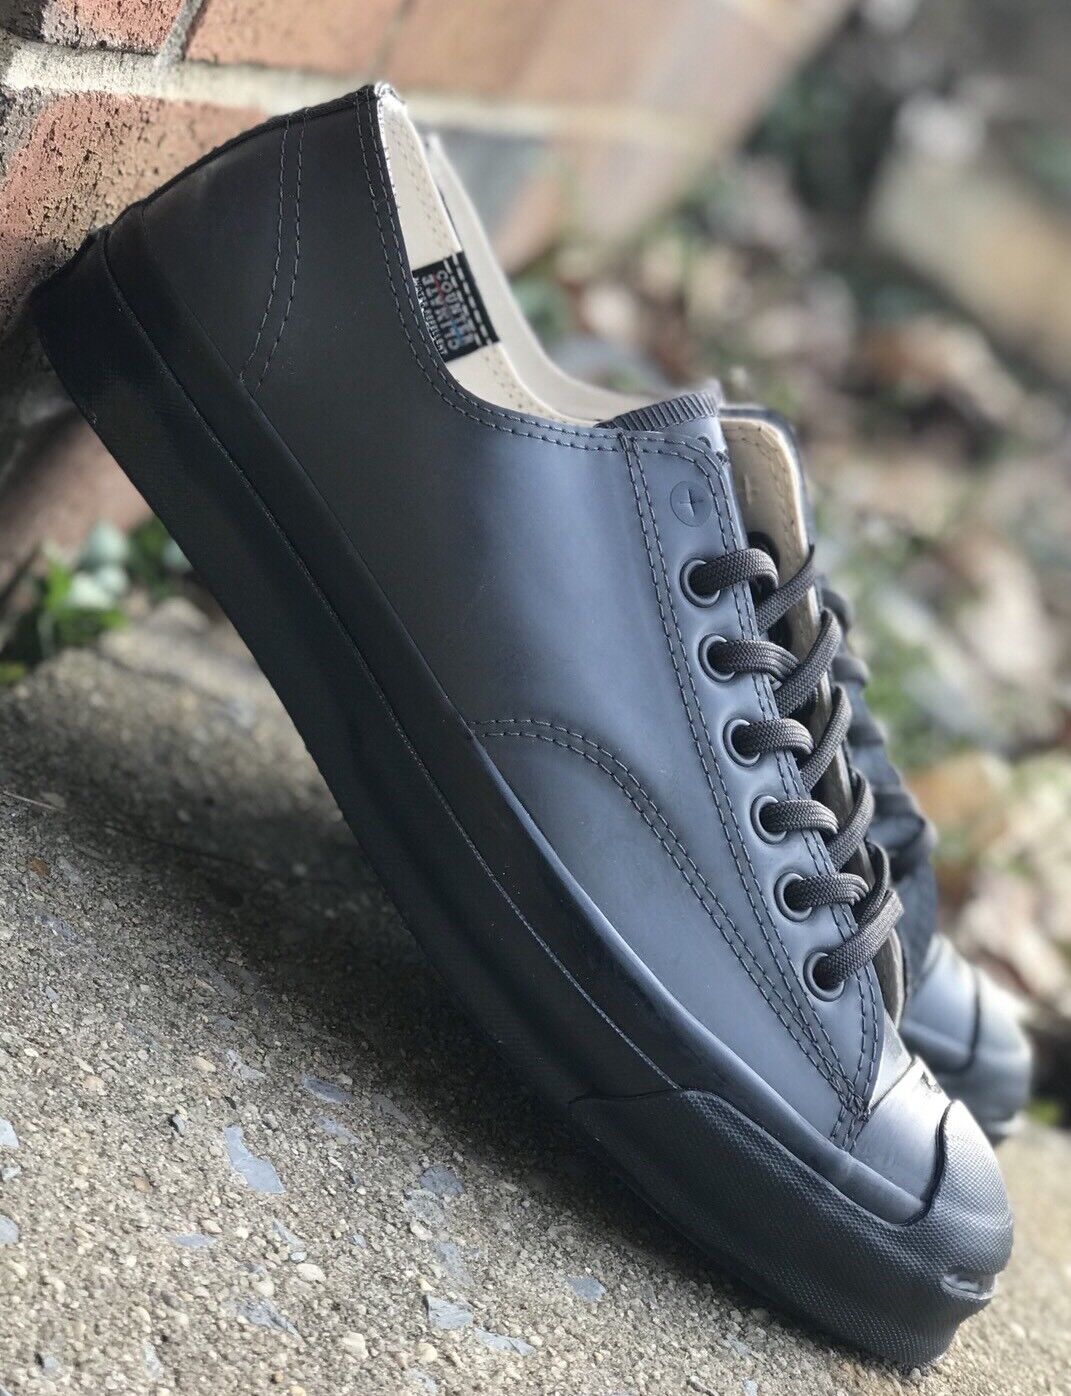 Converse Jack Purcell Signature OX Rubber Counter Klima Schuhe 153584C All Size